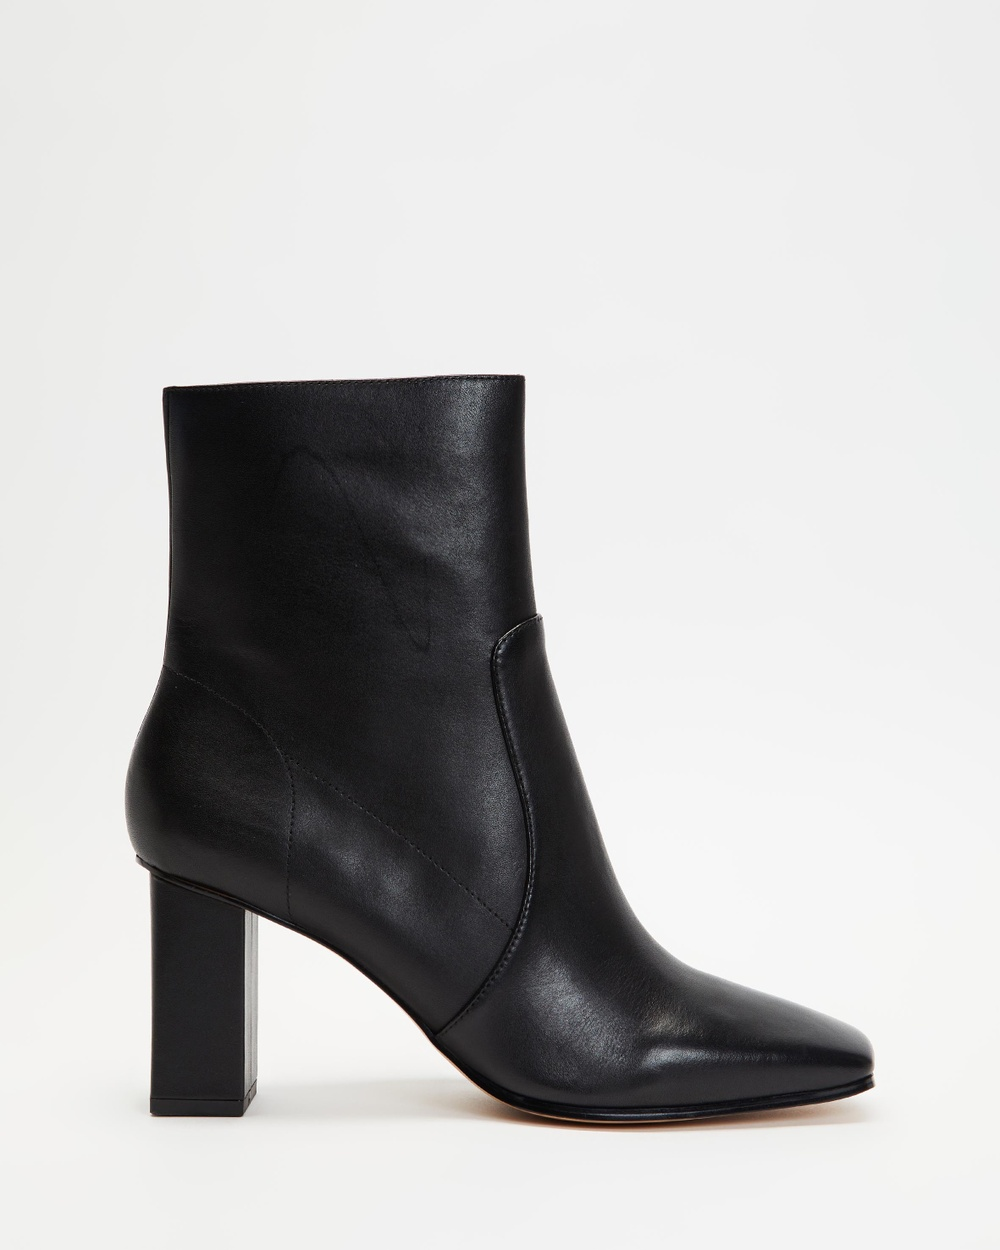 ALDO Theliven Heeled Ankle Boots Black